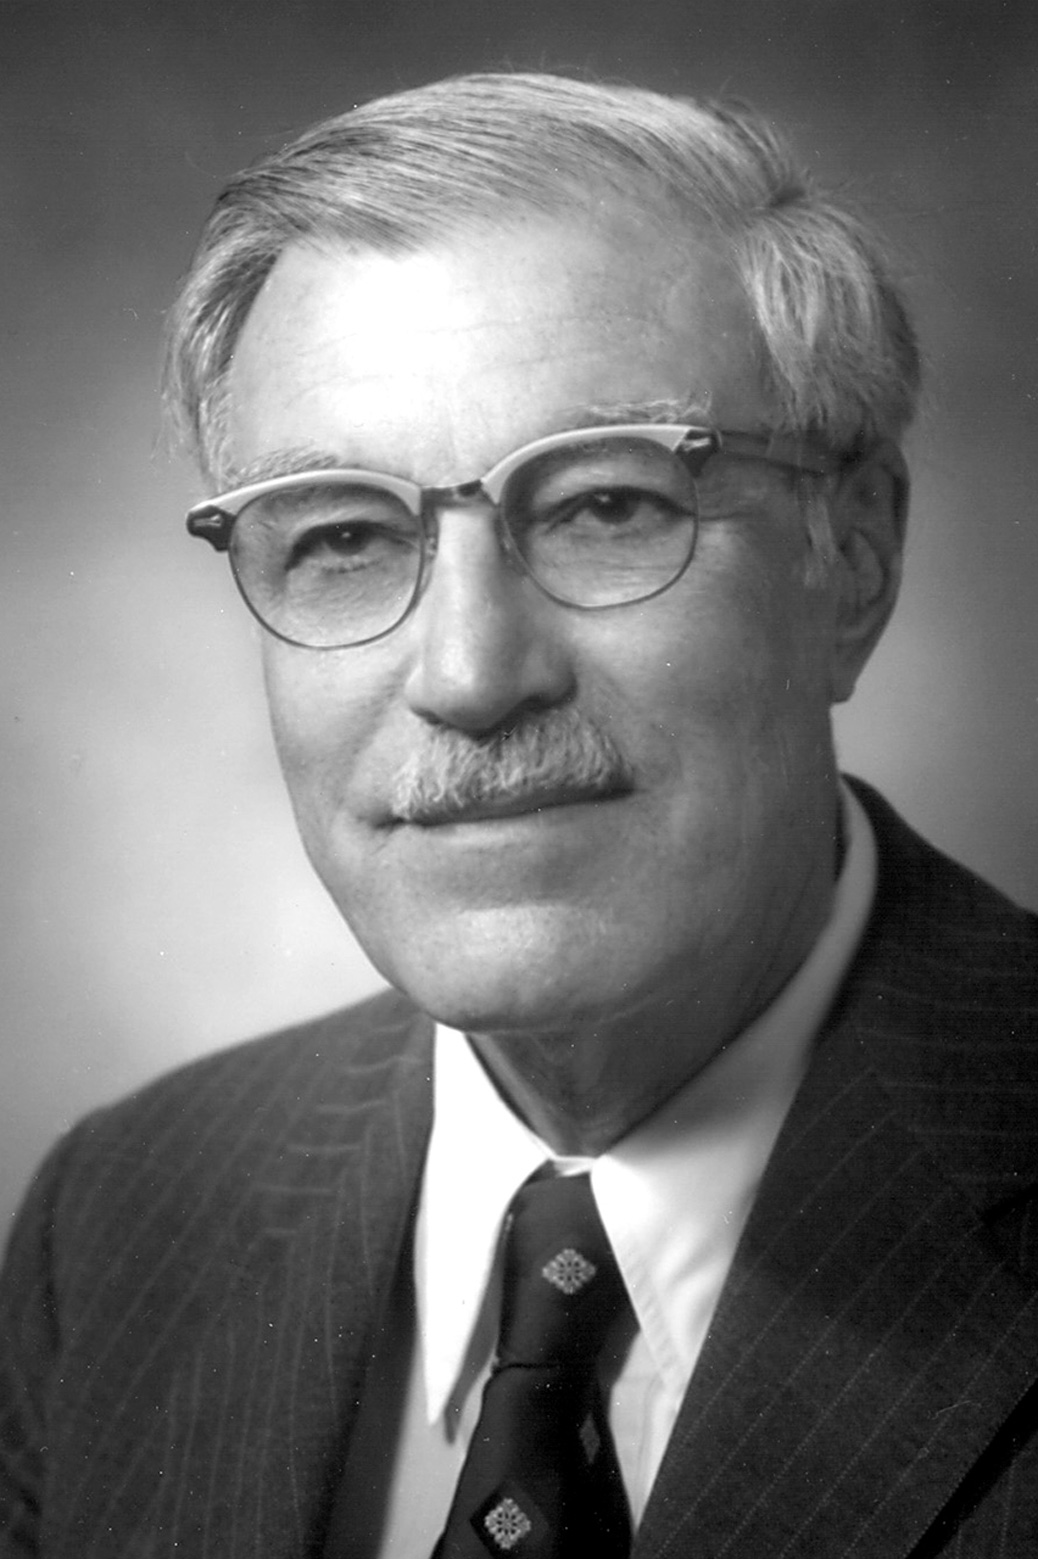 Black and white portrait of Donald L. Katz